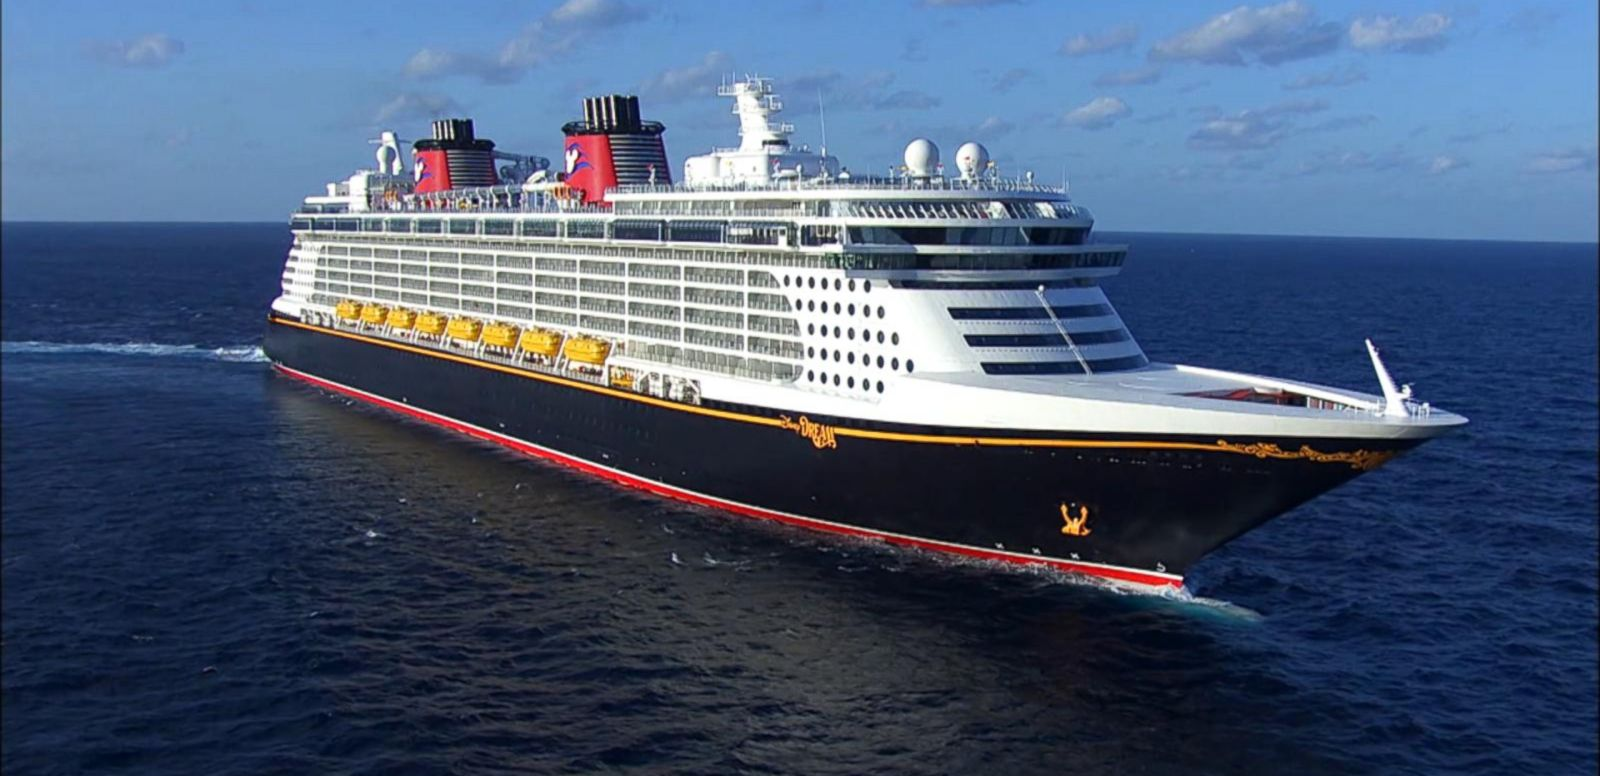 The Disney Dream is actually blue, not black.